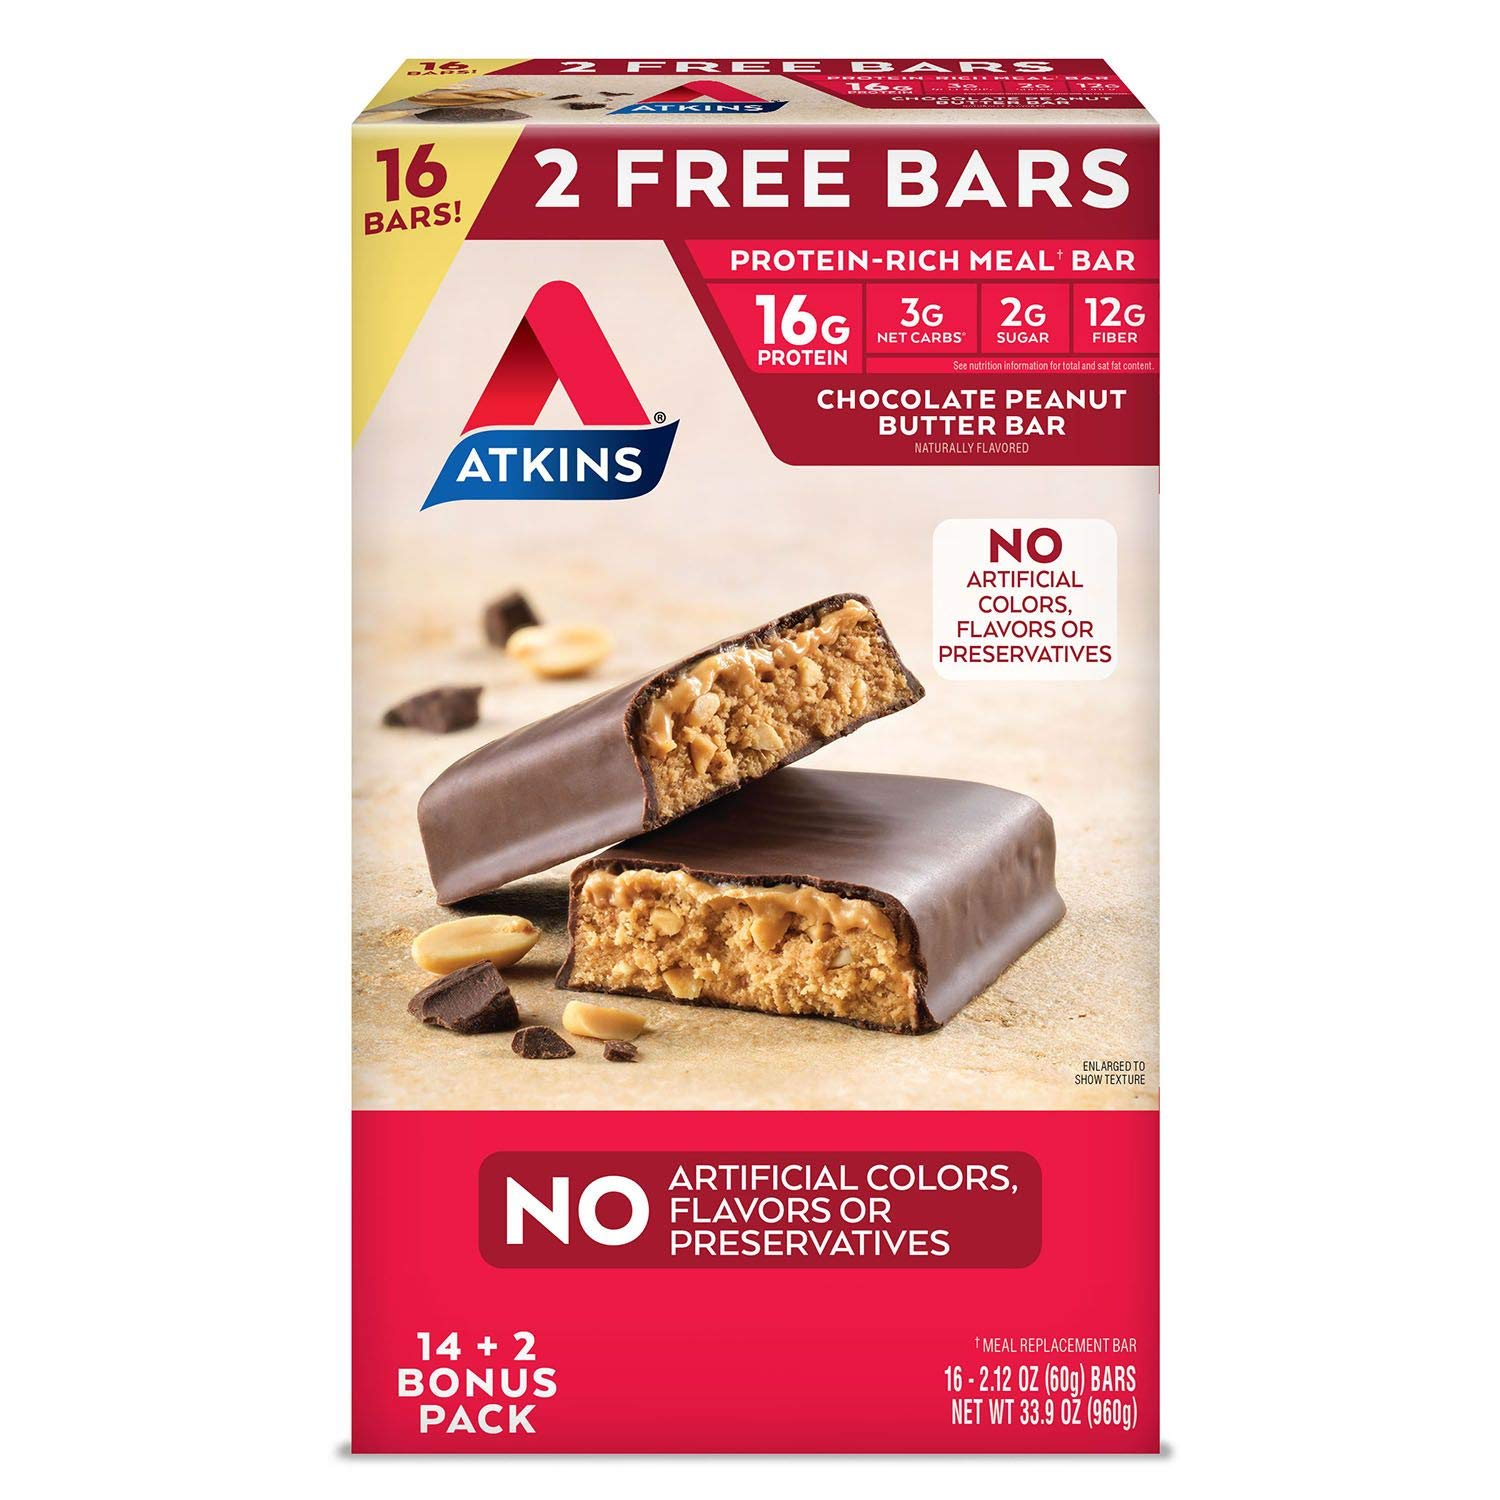 Atkins Protein-Rich Meal Bar, Chocolate Peanut Butter,16Bars - - Delivery Within 2-3 Days